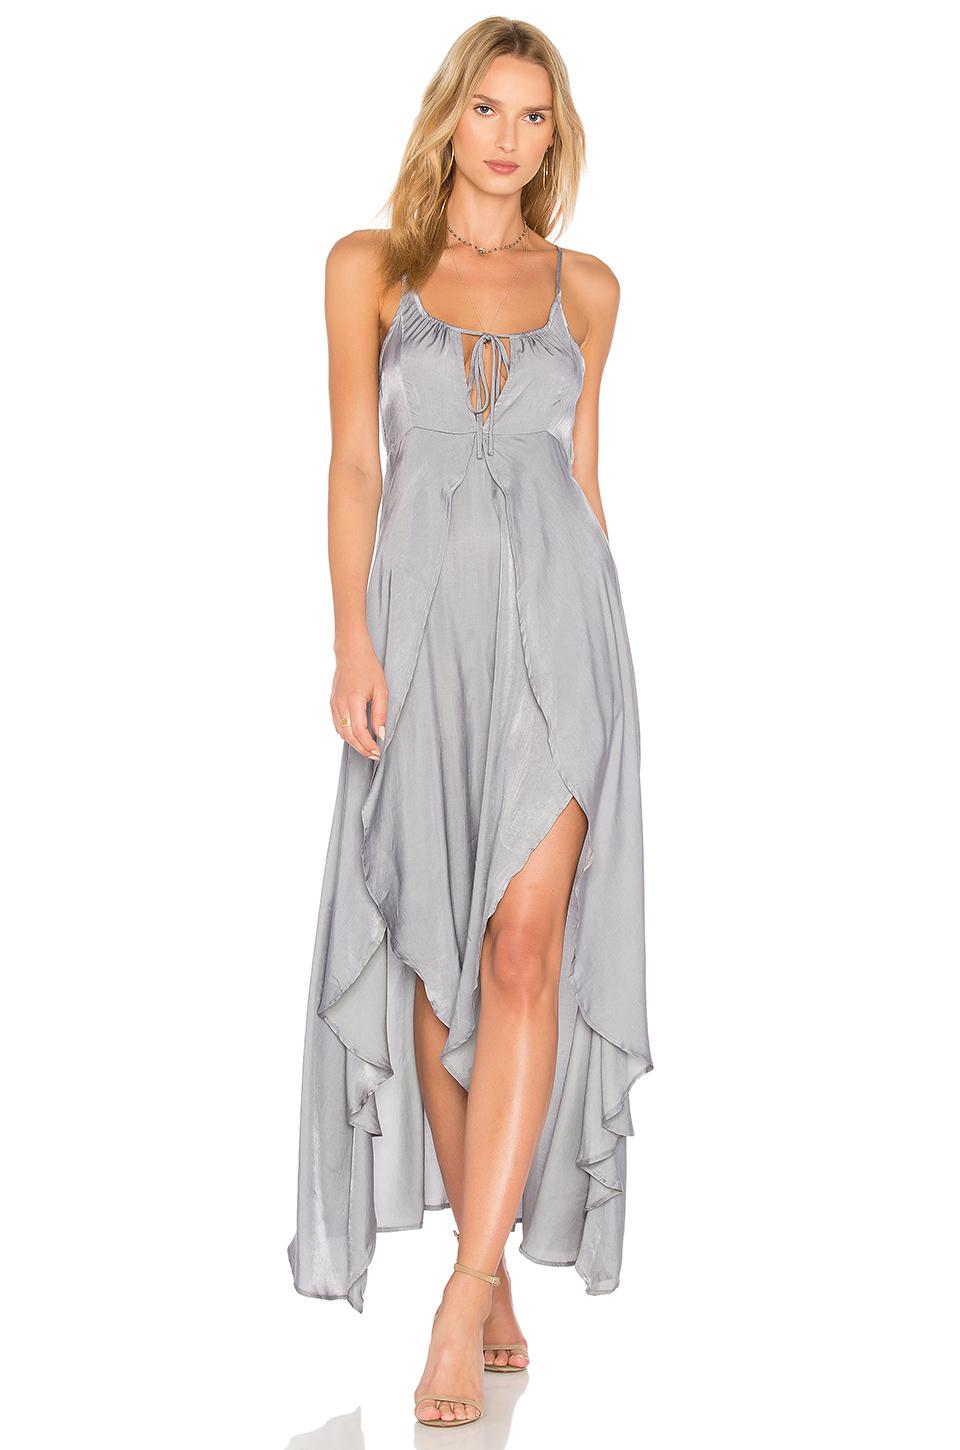 Night maxi dresses